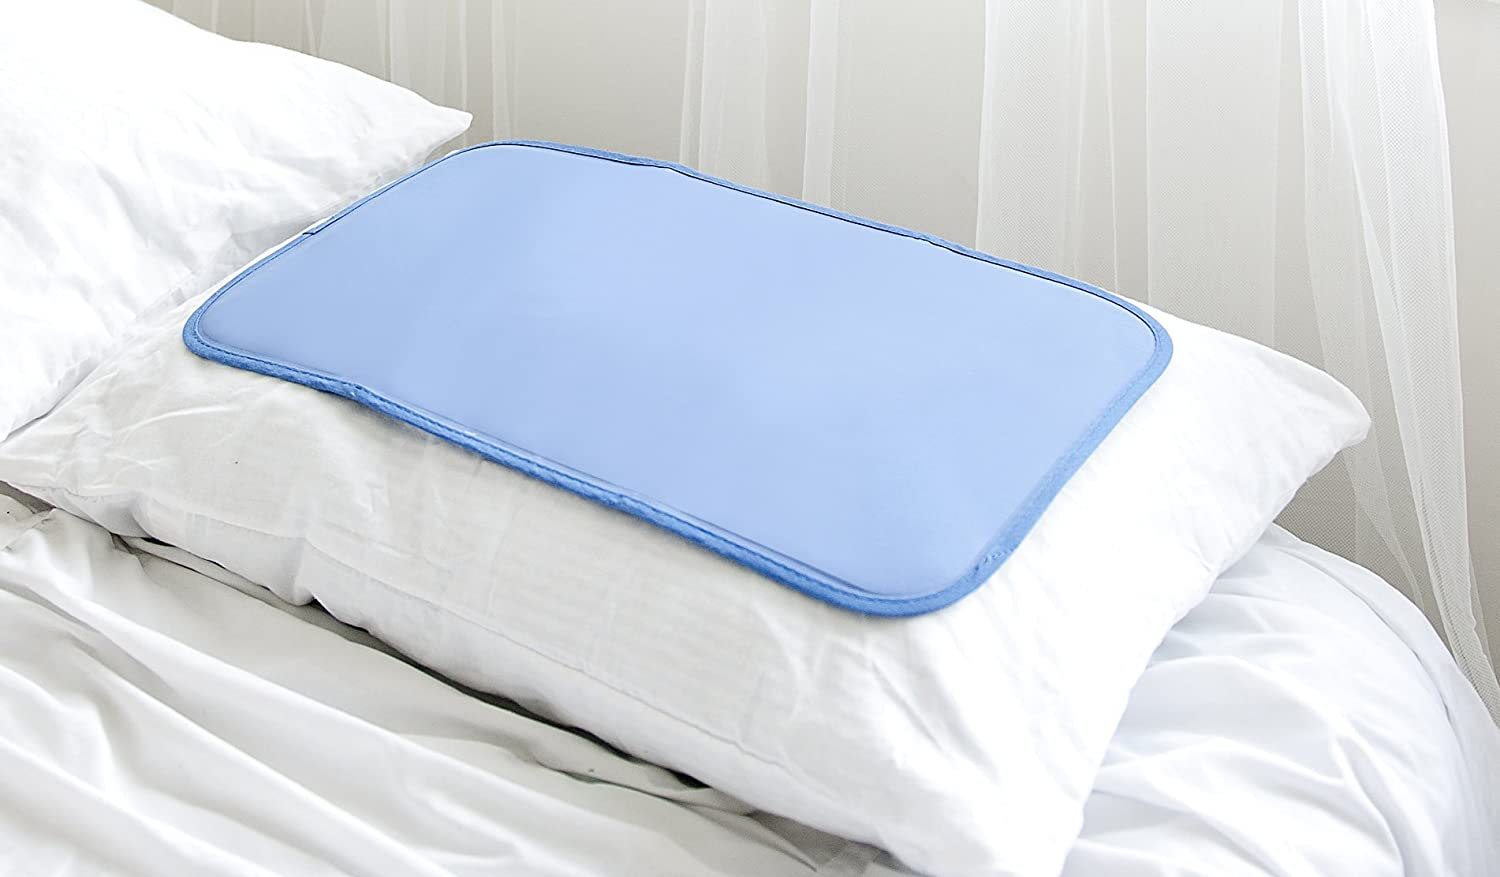 Penguin Cooling Pillow Mat 12.2 x 22 in. Largest on Amazon, Soft Gel, No Water or Leaks пинетки митенки blue penguin puku